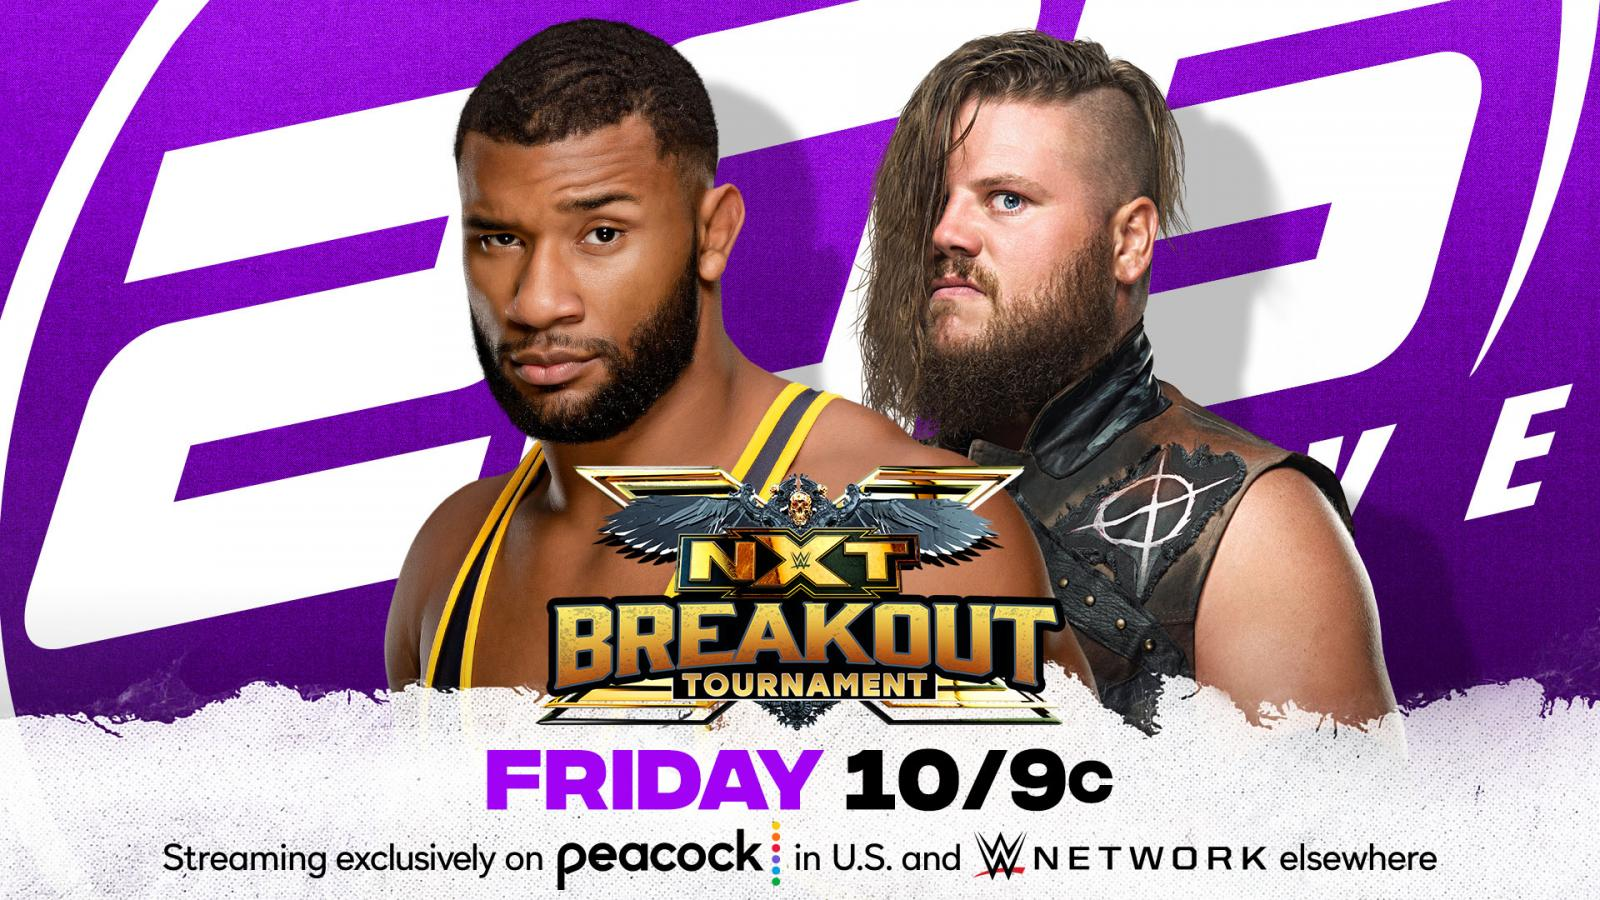 WWE 205 Live Results (7/2): NXT Breakout Tournament Begins, Four New Stars Debut